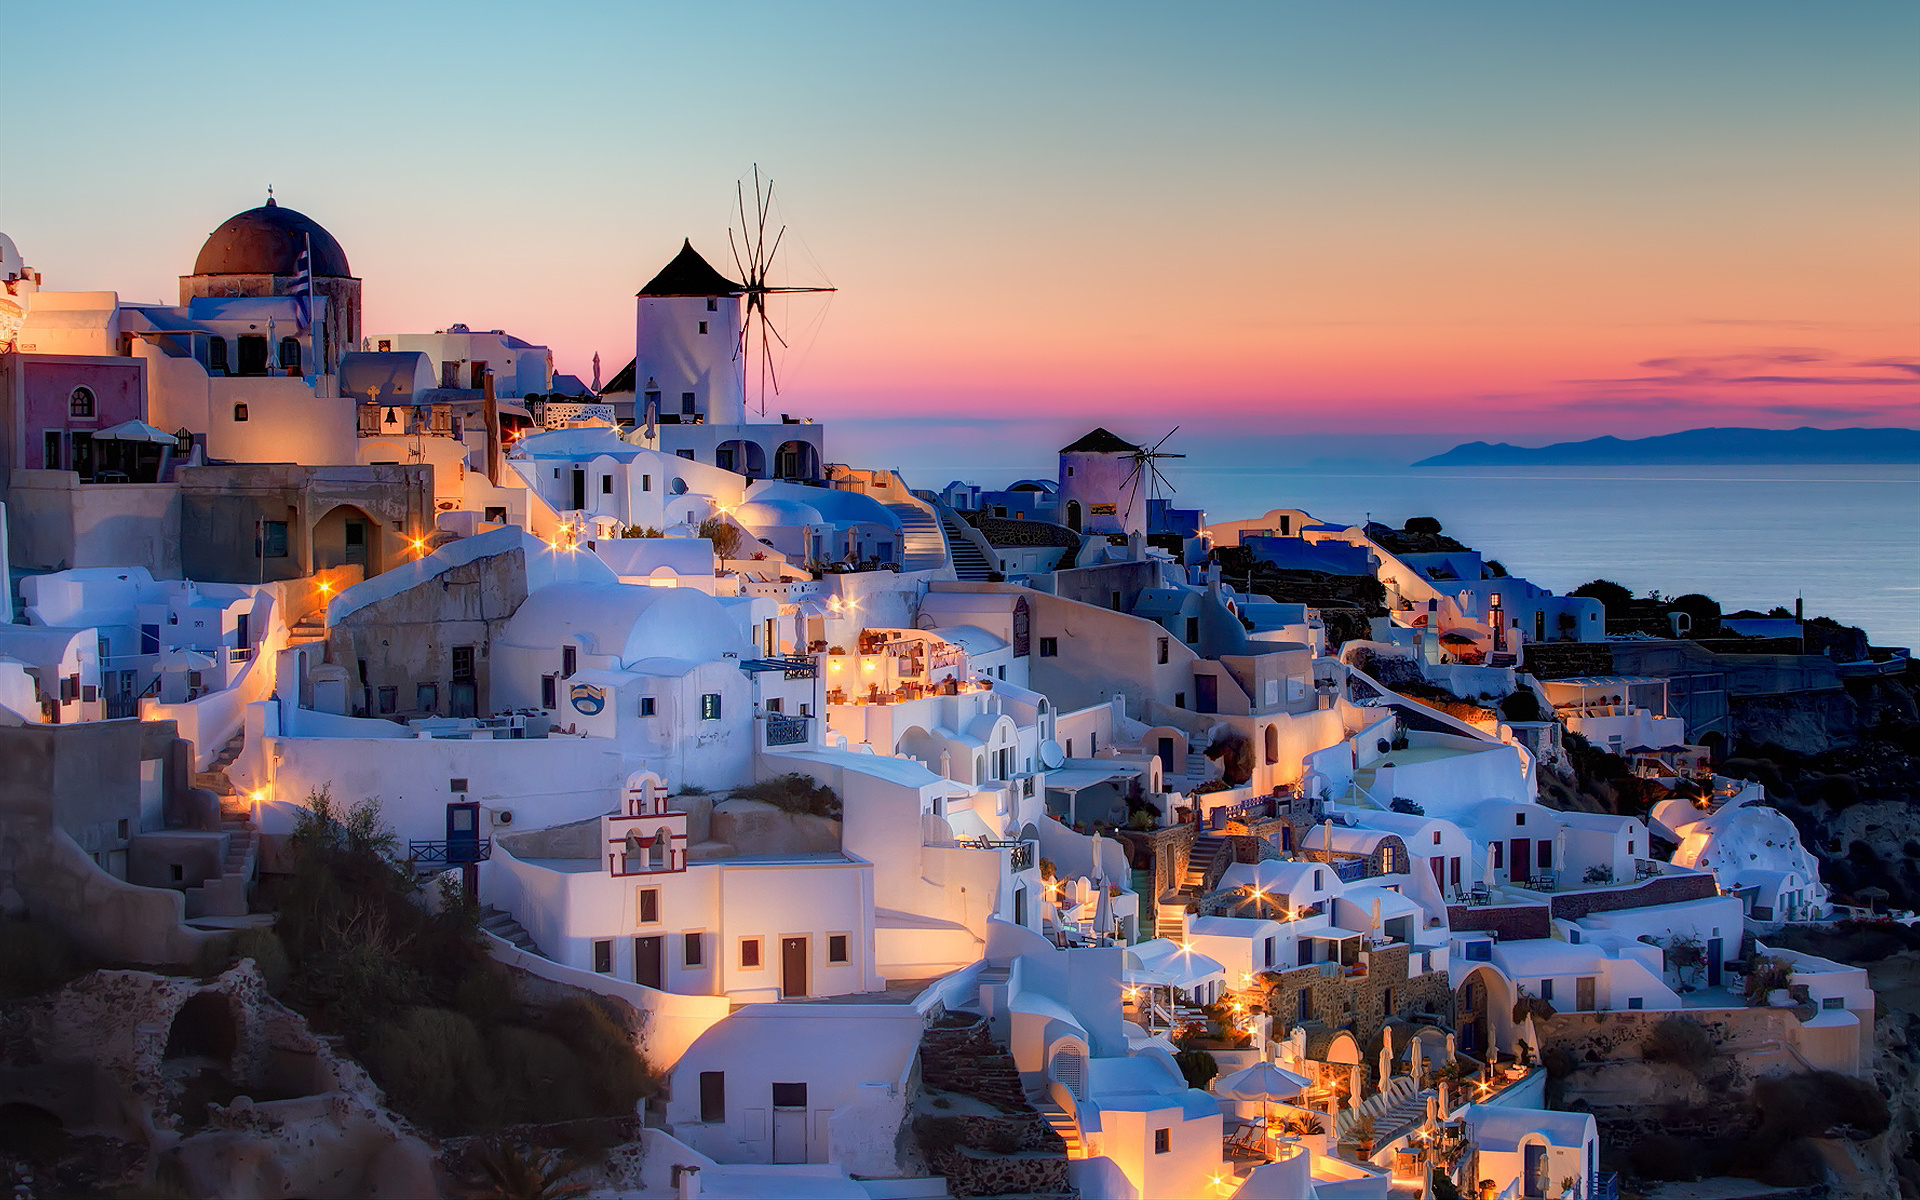 Santorini Sunset Cruis HD Wallpaper Background Images 1920x1200